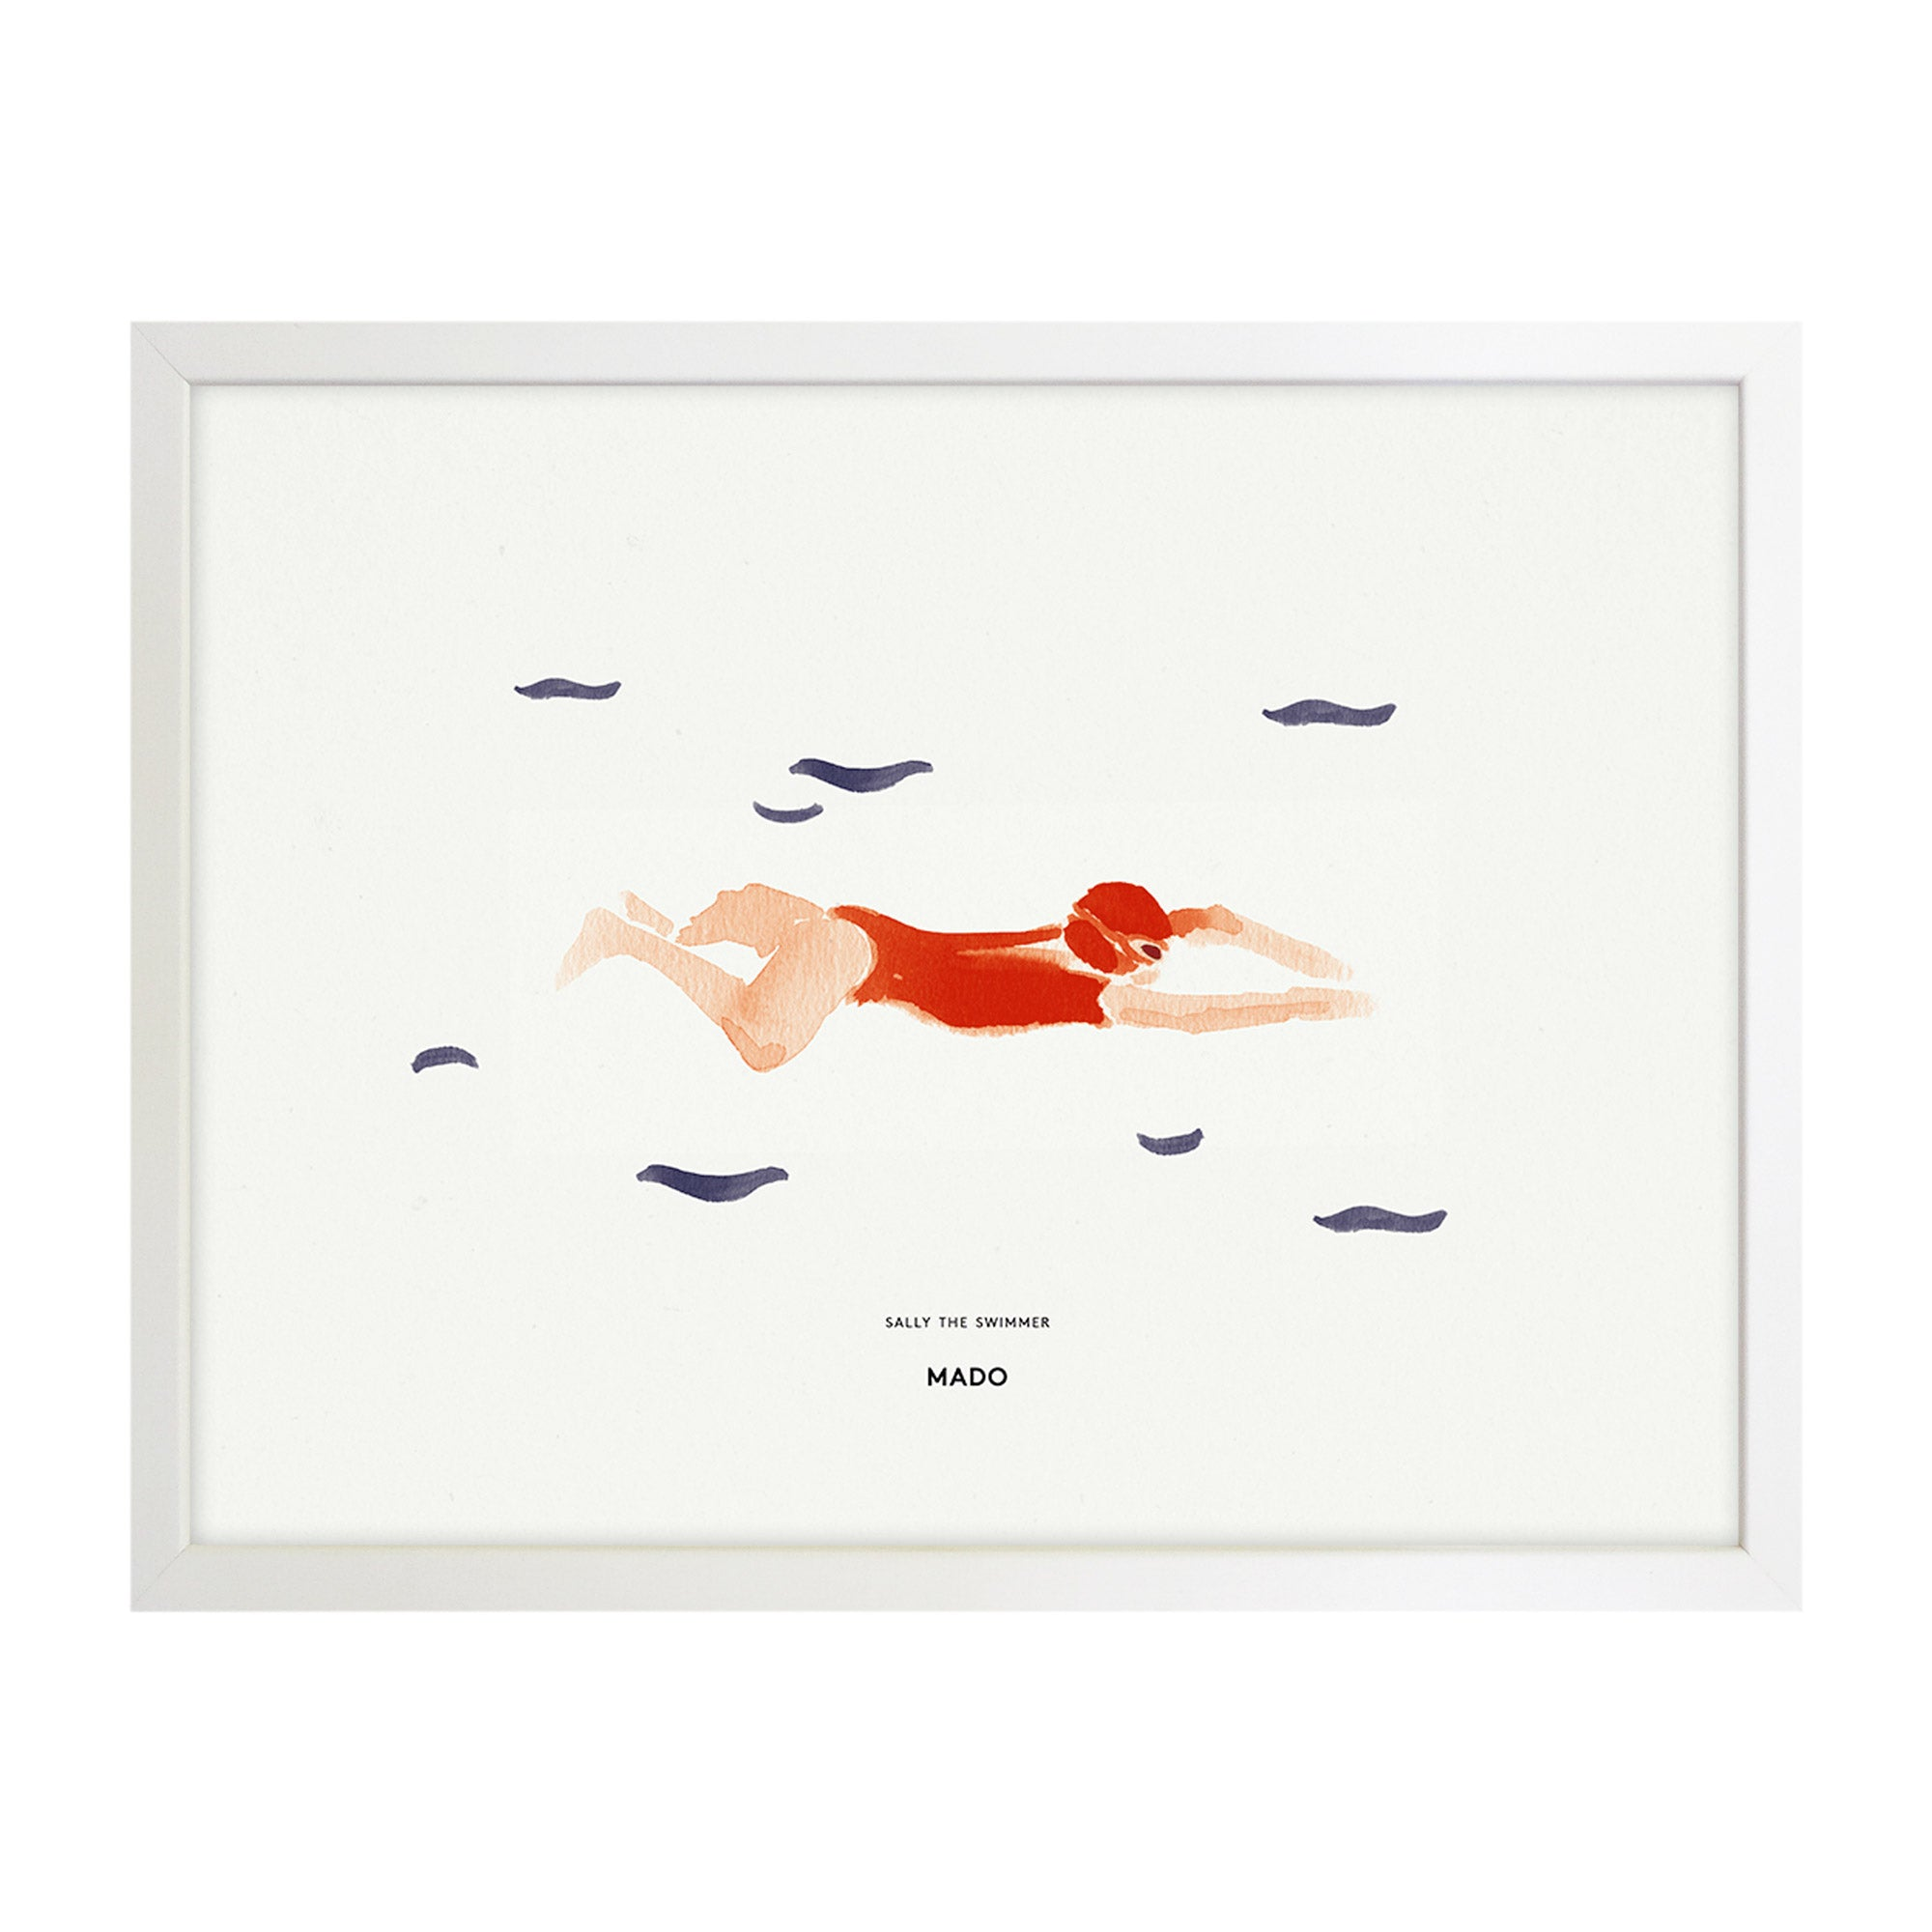 Art Print - Sally the Swimmer - MADO - NZ Stockist - Mado Stockist - Shop Online Now - Paper Plane